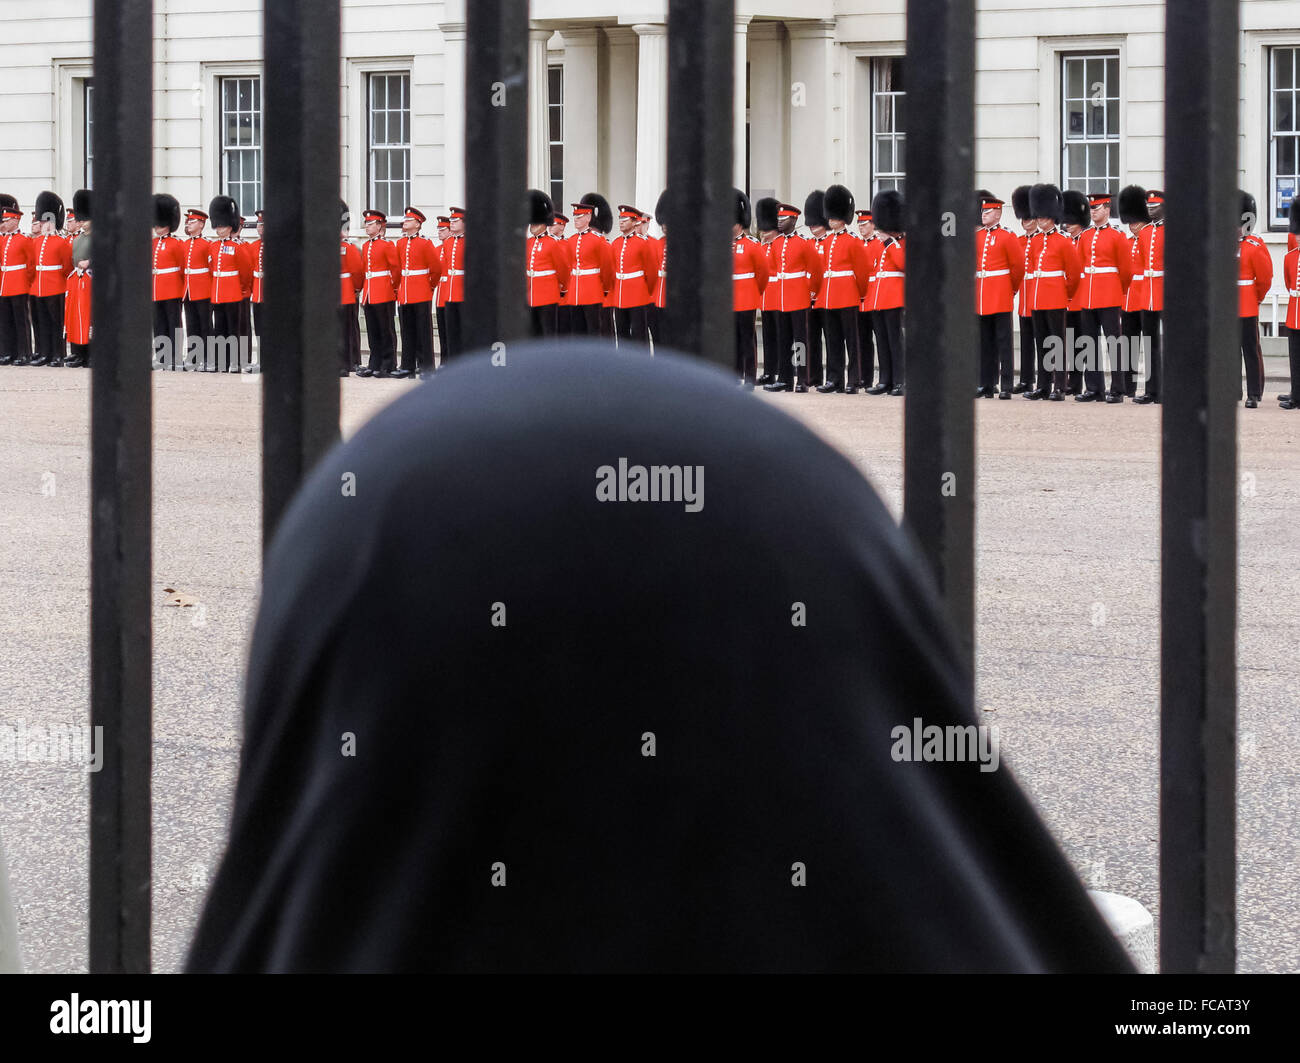 London, UK. 21st January, 2016. A veiled Muslim women watches Queen's guards in Wellington Barracks. Credit: - Stock Image